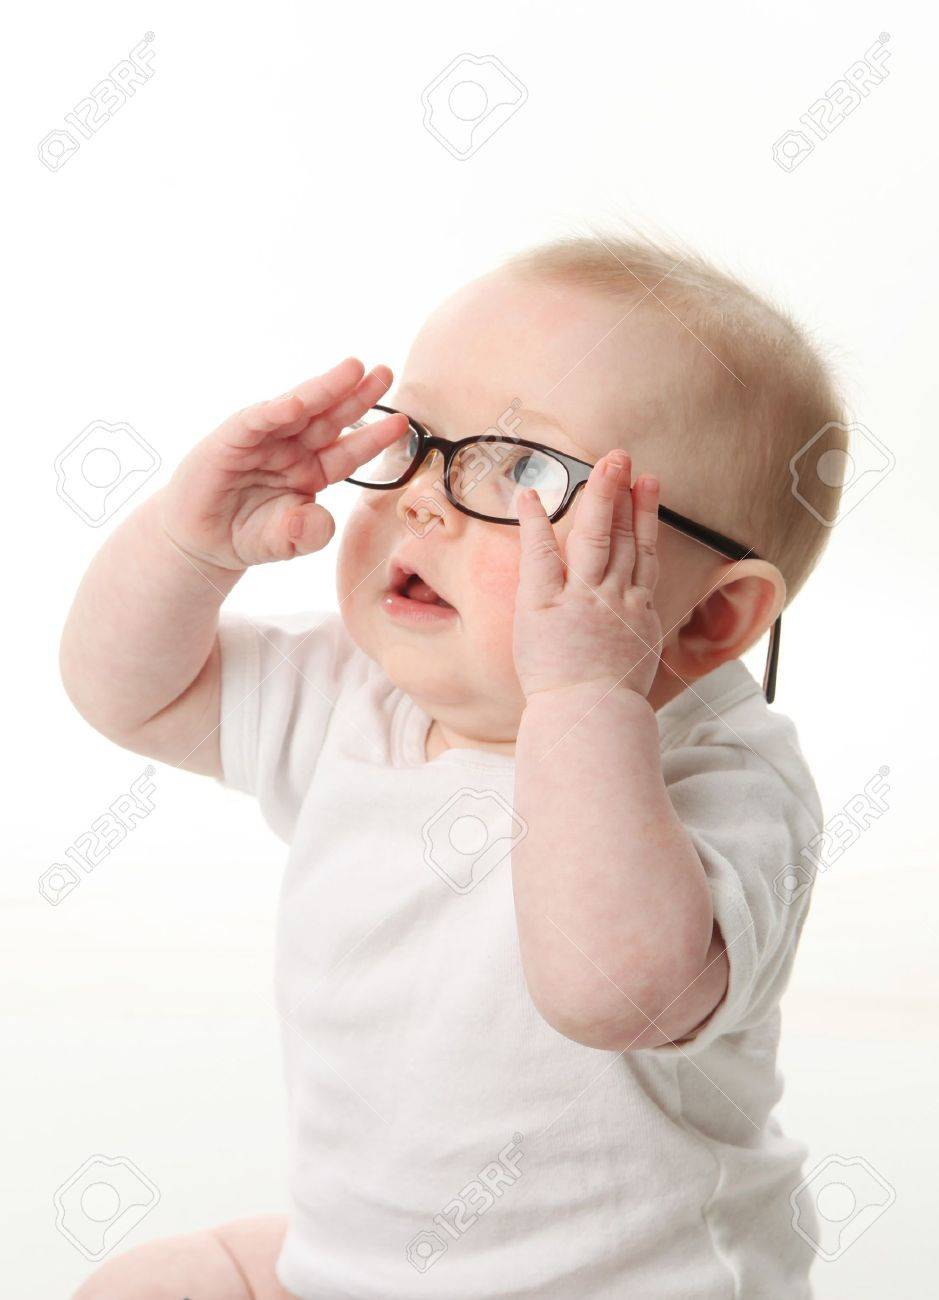 Portrait of a baby wearing eyeglasses and playing with them Stock Photo - 9939538